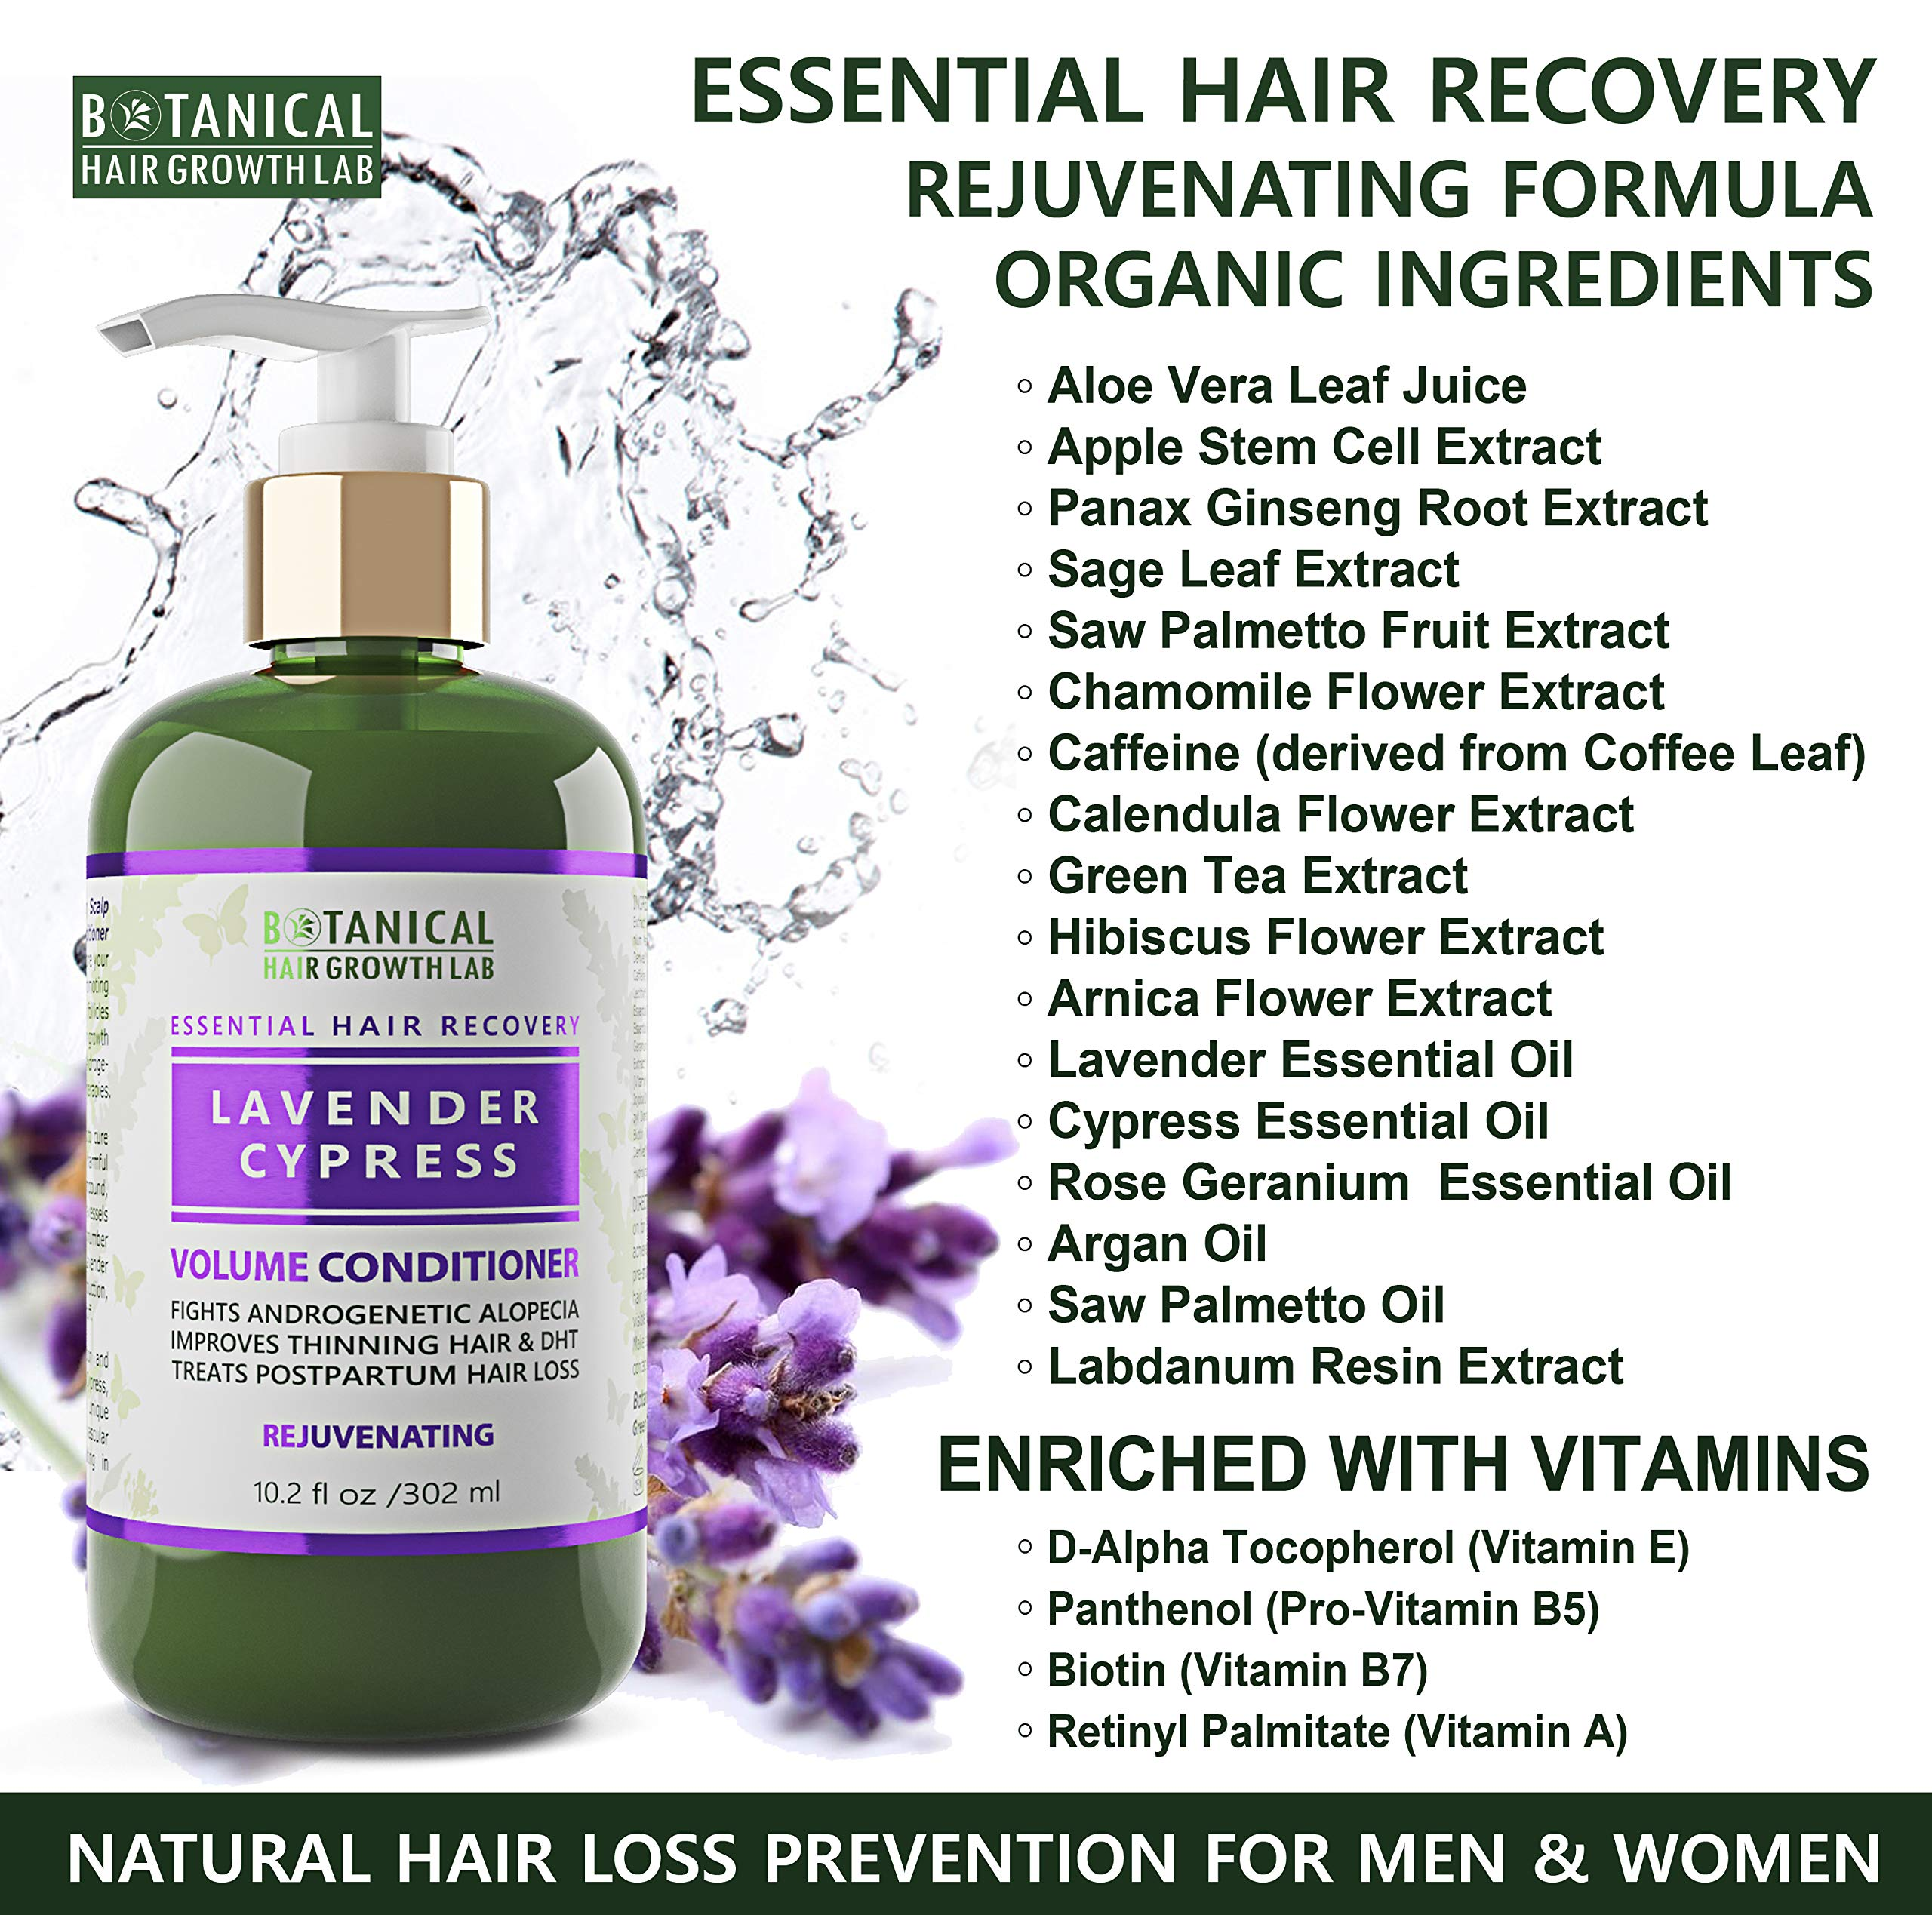 Botanical Hair Growth Lab Anti Hair Loss Alopecia Postpartum DHT Blocker Shampoo and Conditioner Value Set Lavender - Cypress Hair Growth Botanical For Hair Thinning Prevention by BOTANICAL HAIR GROWTH LAB